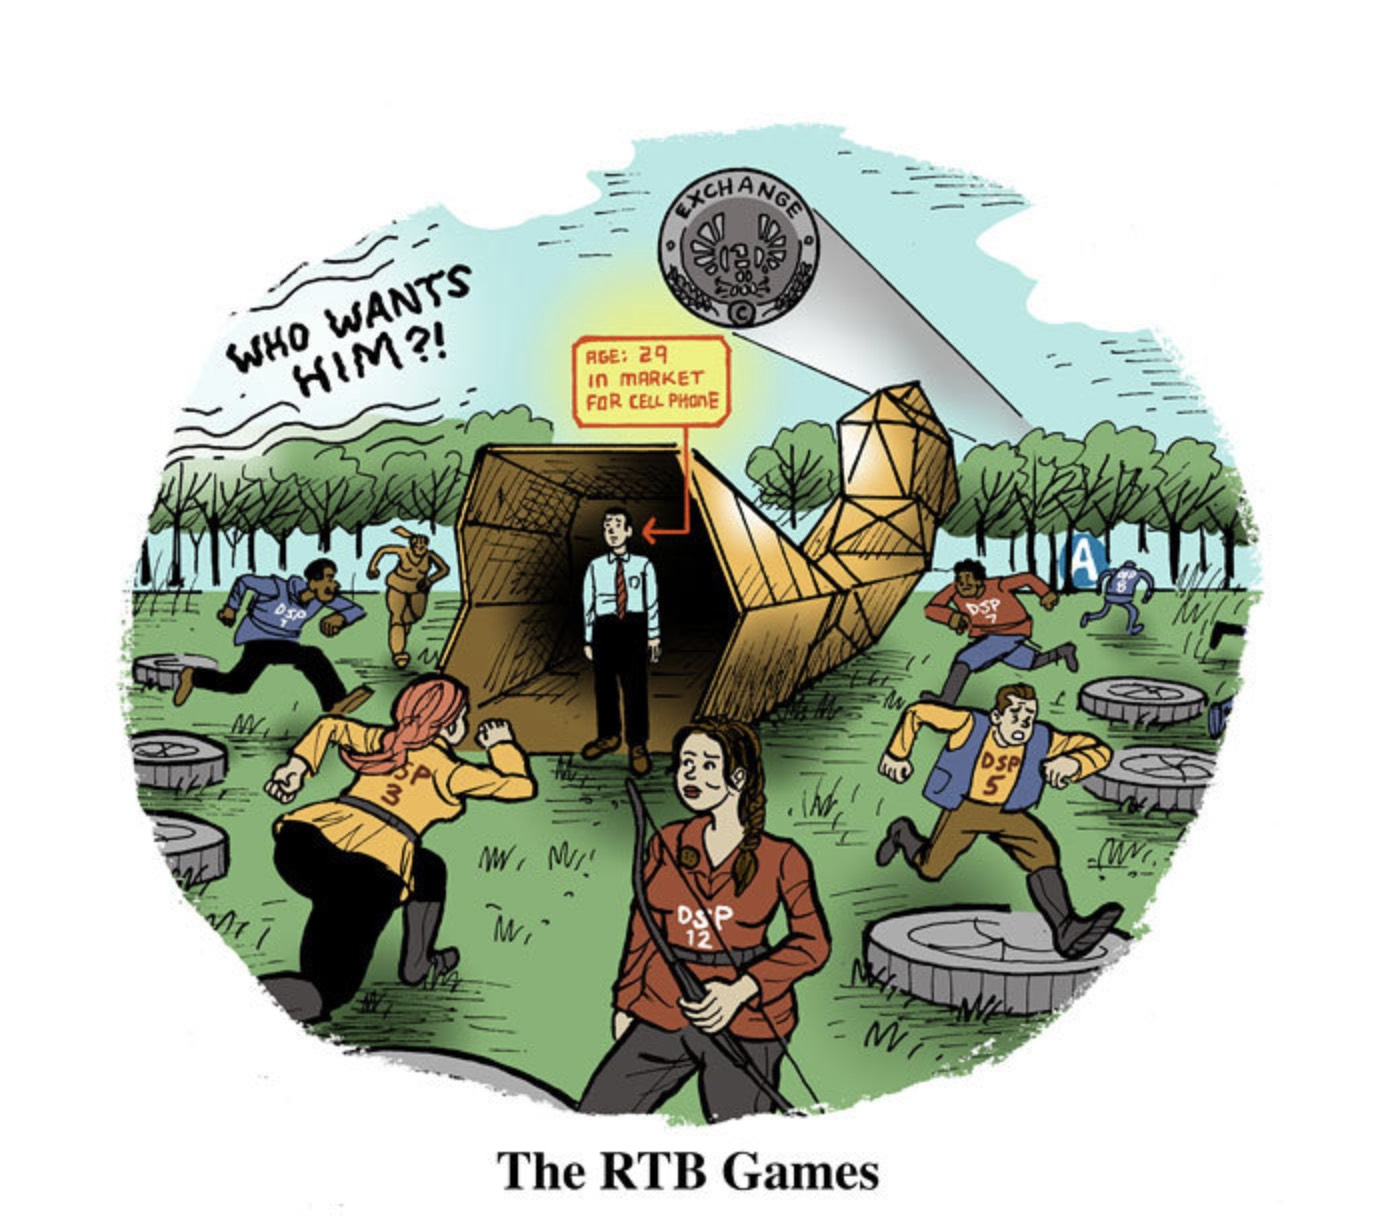 The Real Time Bidding game